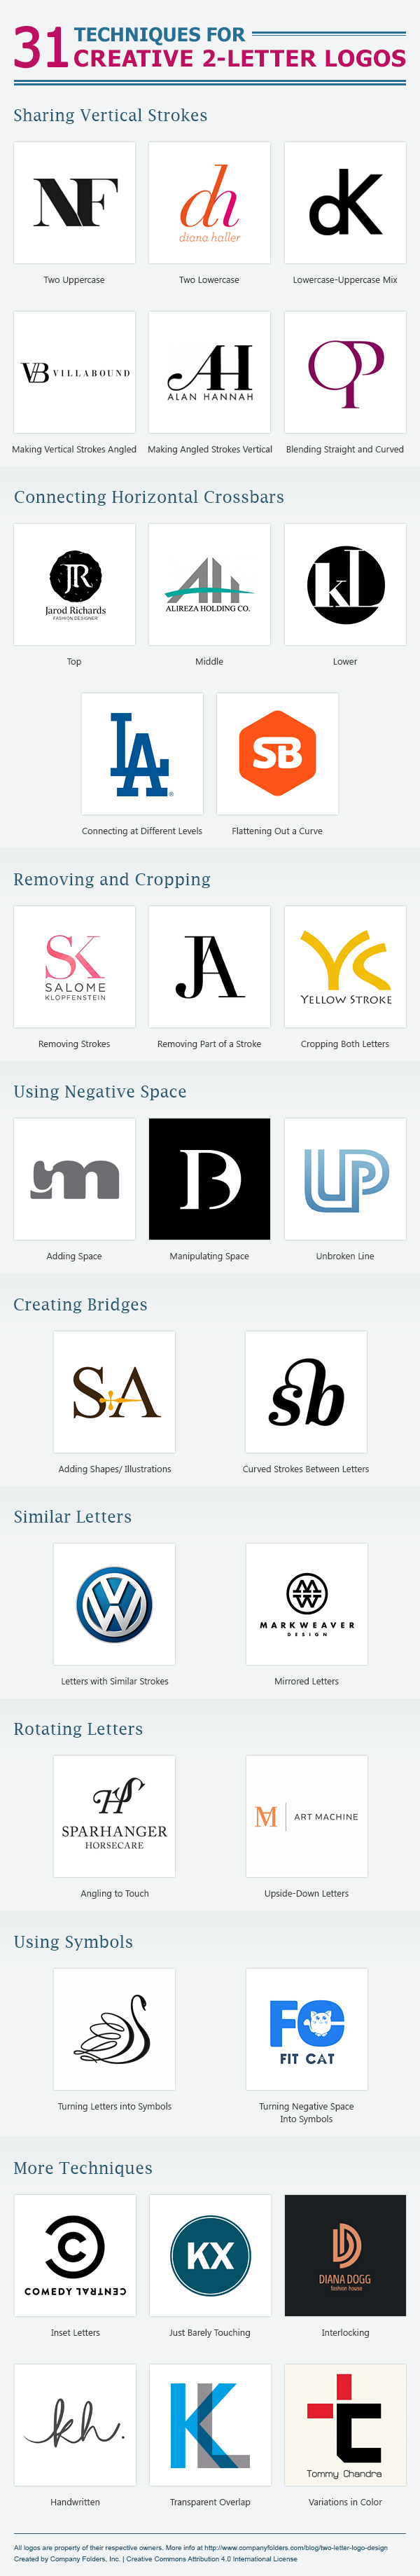 Design Ideas For Cool TwoLetter Logos